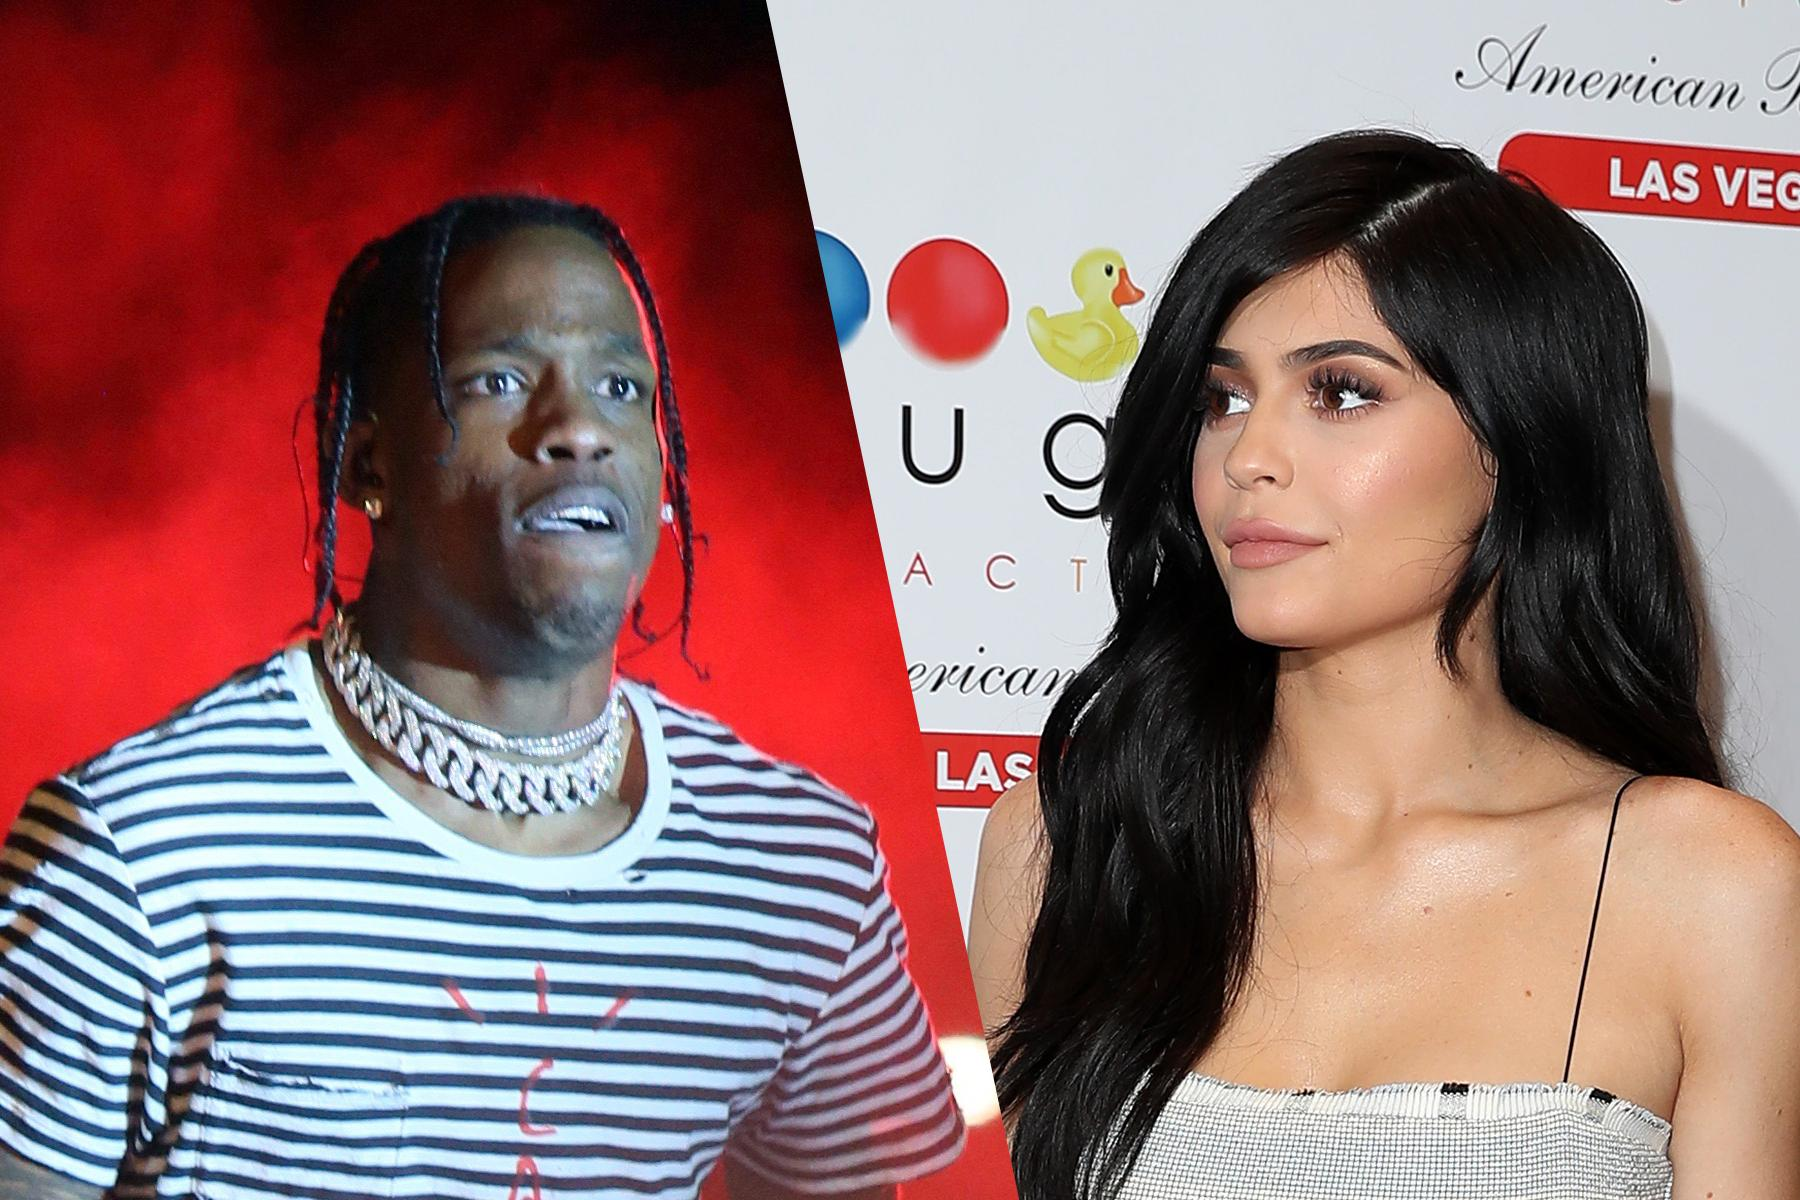 Kylie Jenner Apparently Found Evidence That Boyfriend Travis Scott Cheated On Her